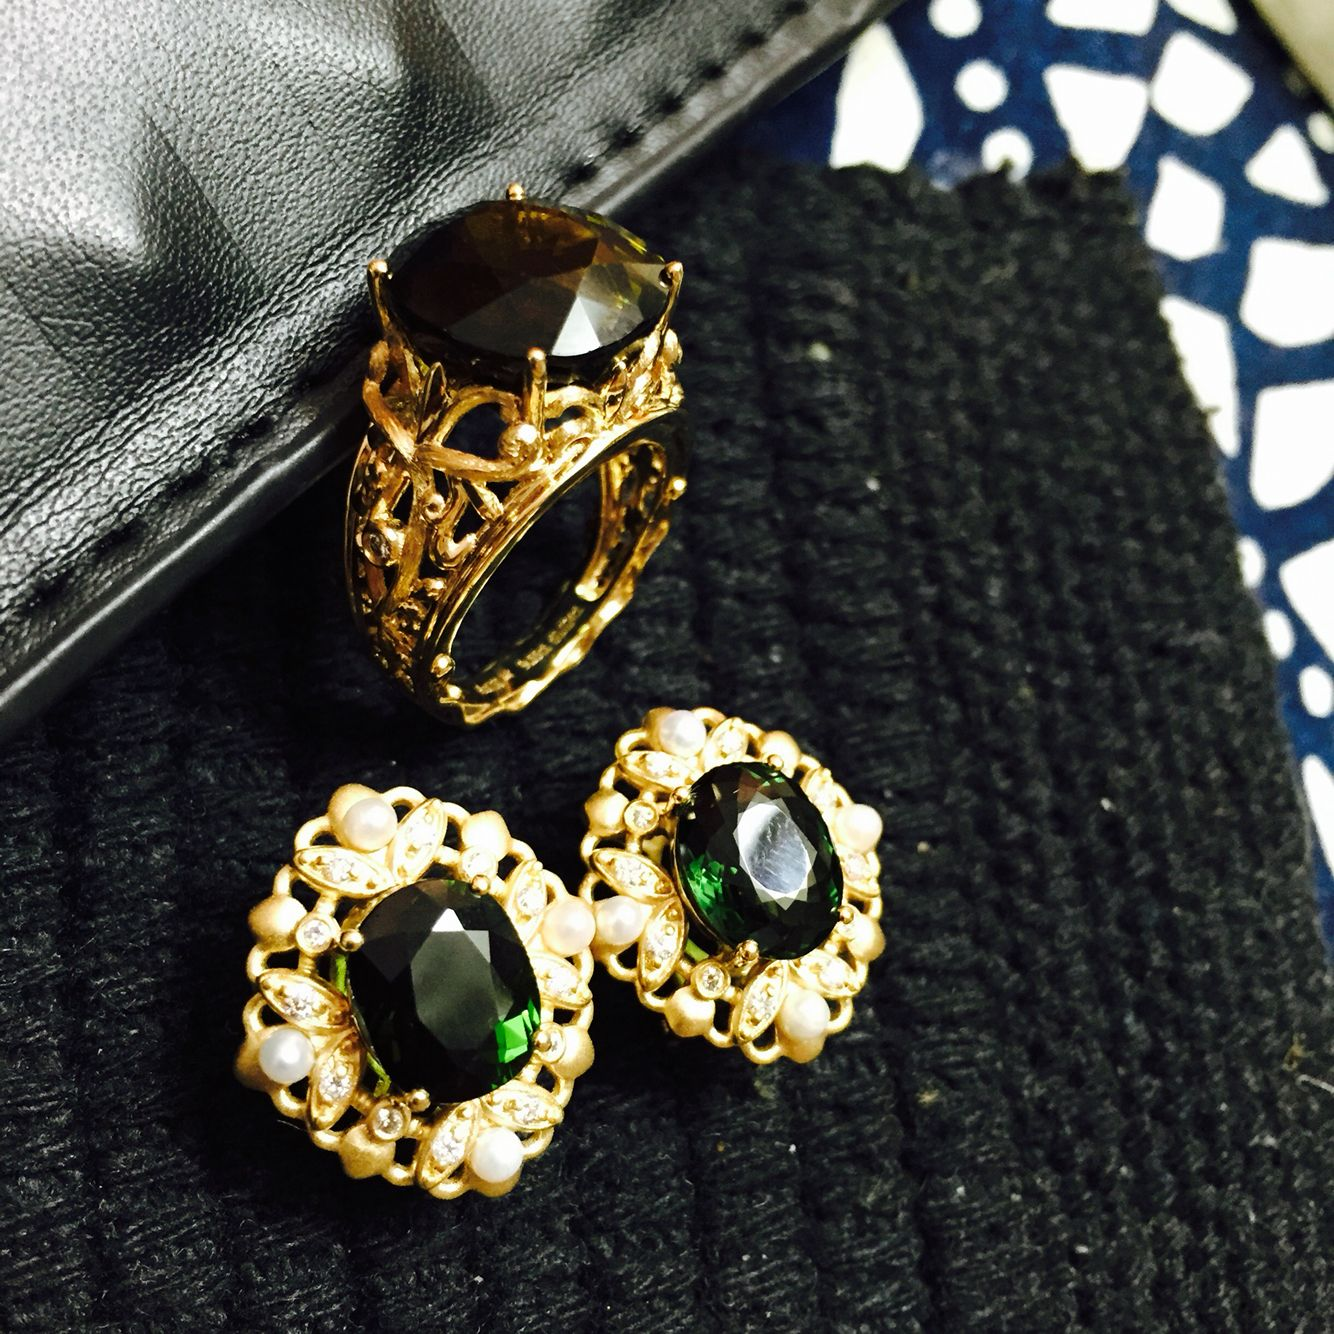 Handmade green tourmaline eatings and ring. They look gorgeous!